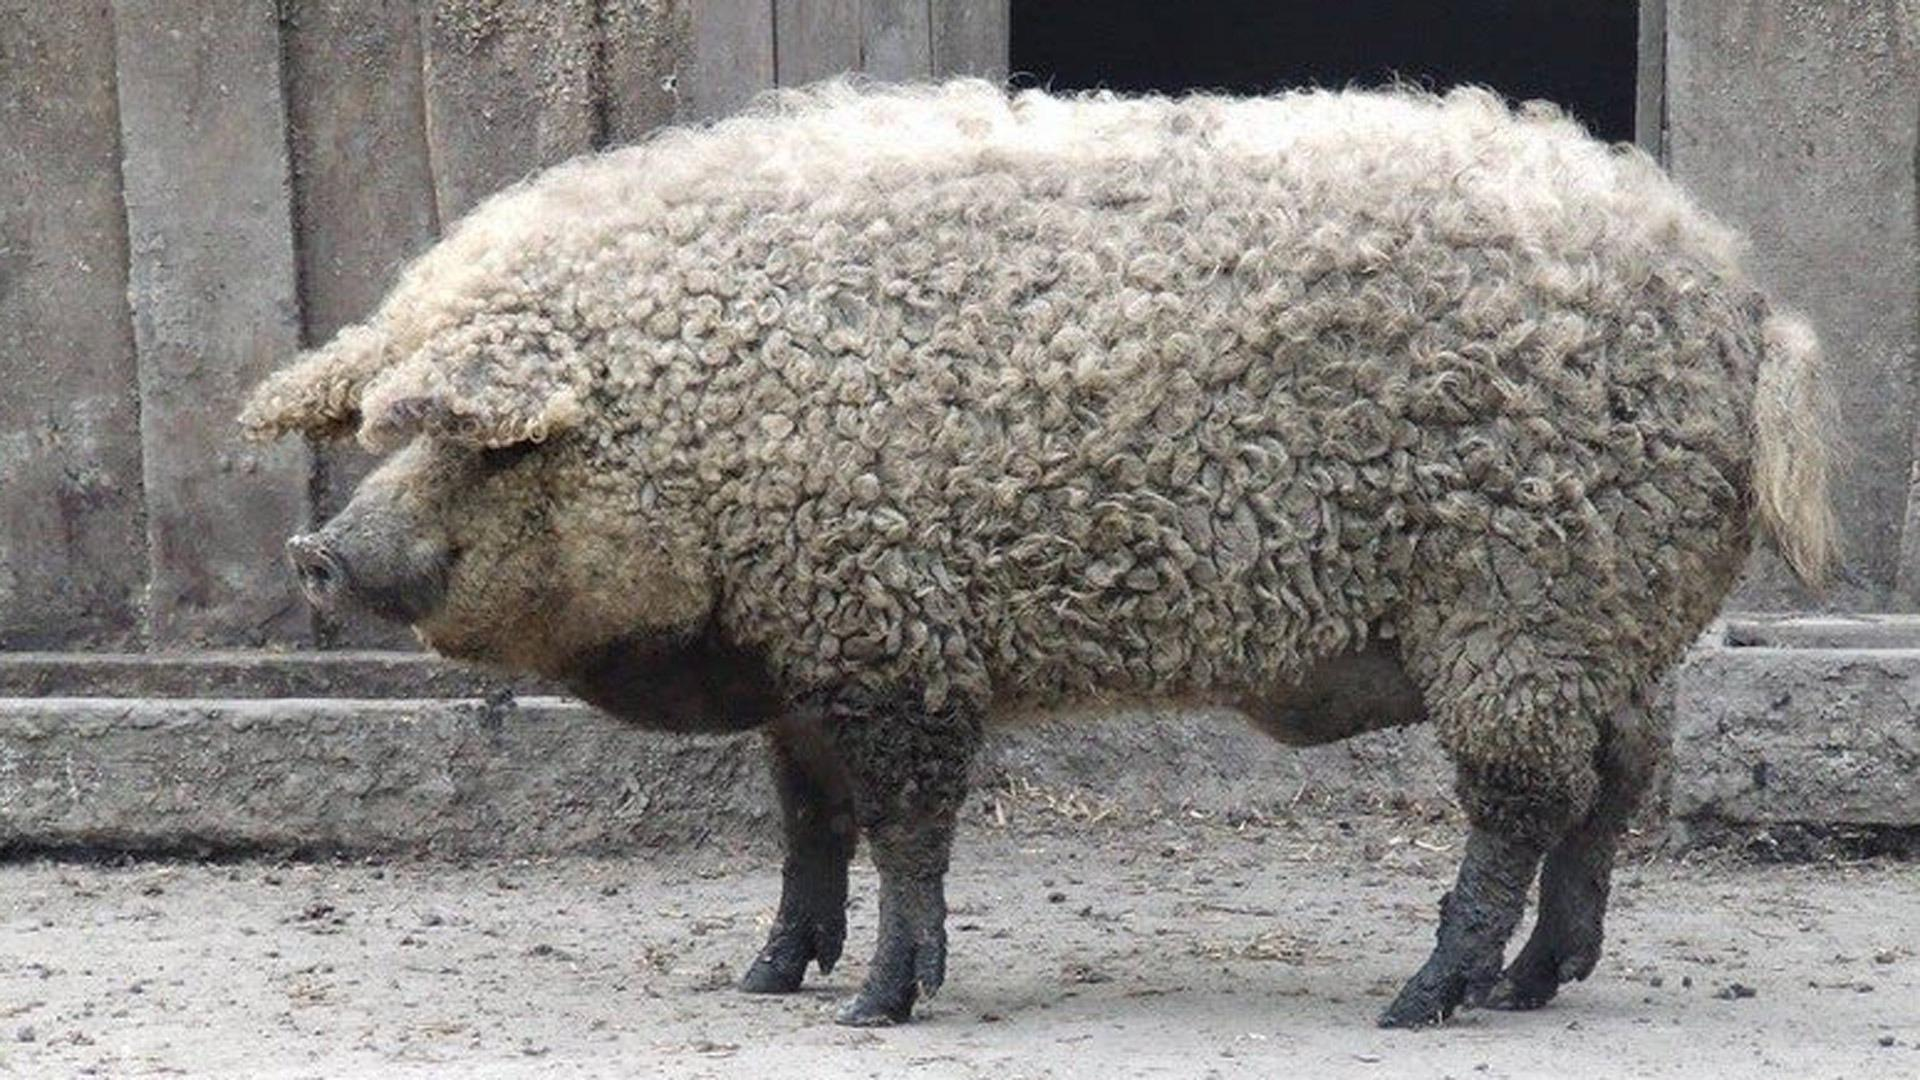 Your new dream pet is a fuzzy Mangalica pig that looks like a sheep